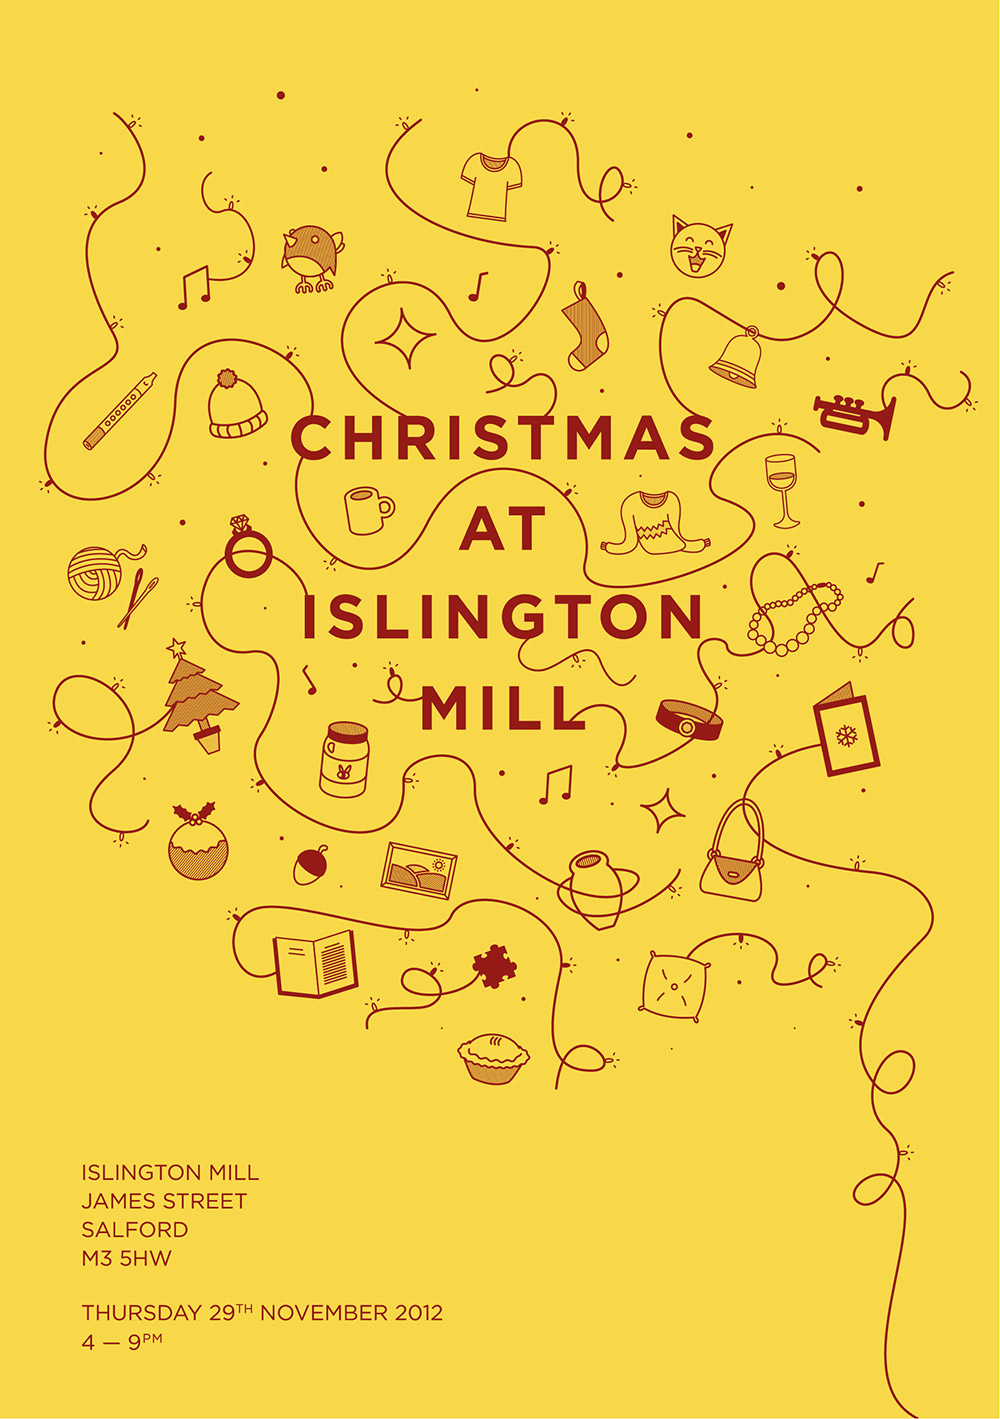 Xmas at Islington Mill